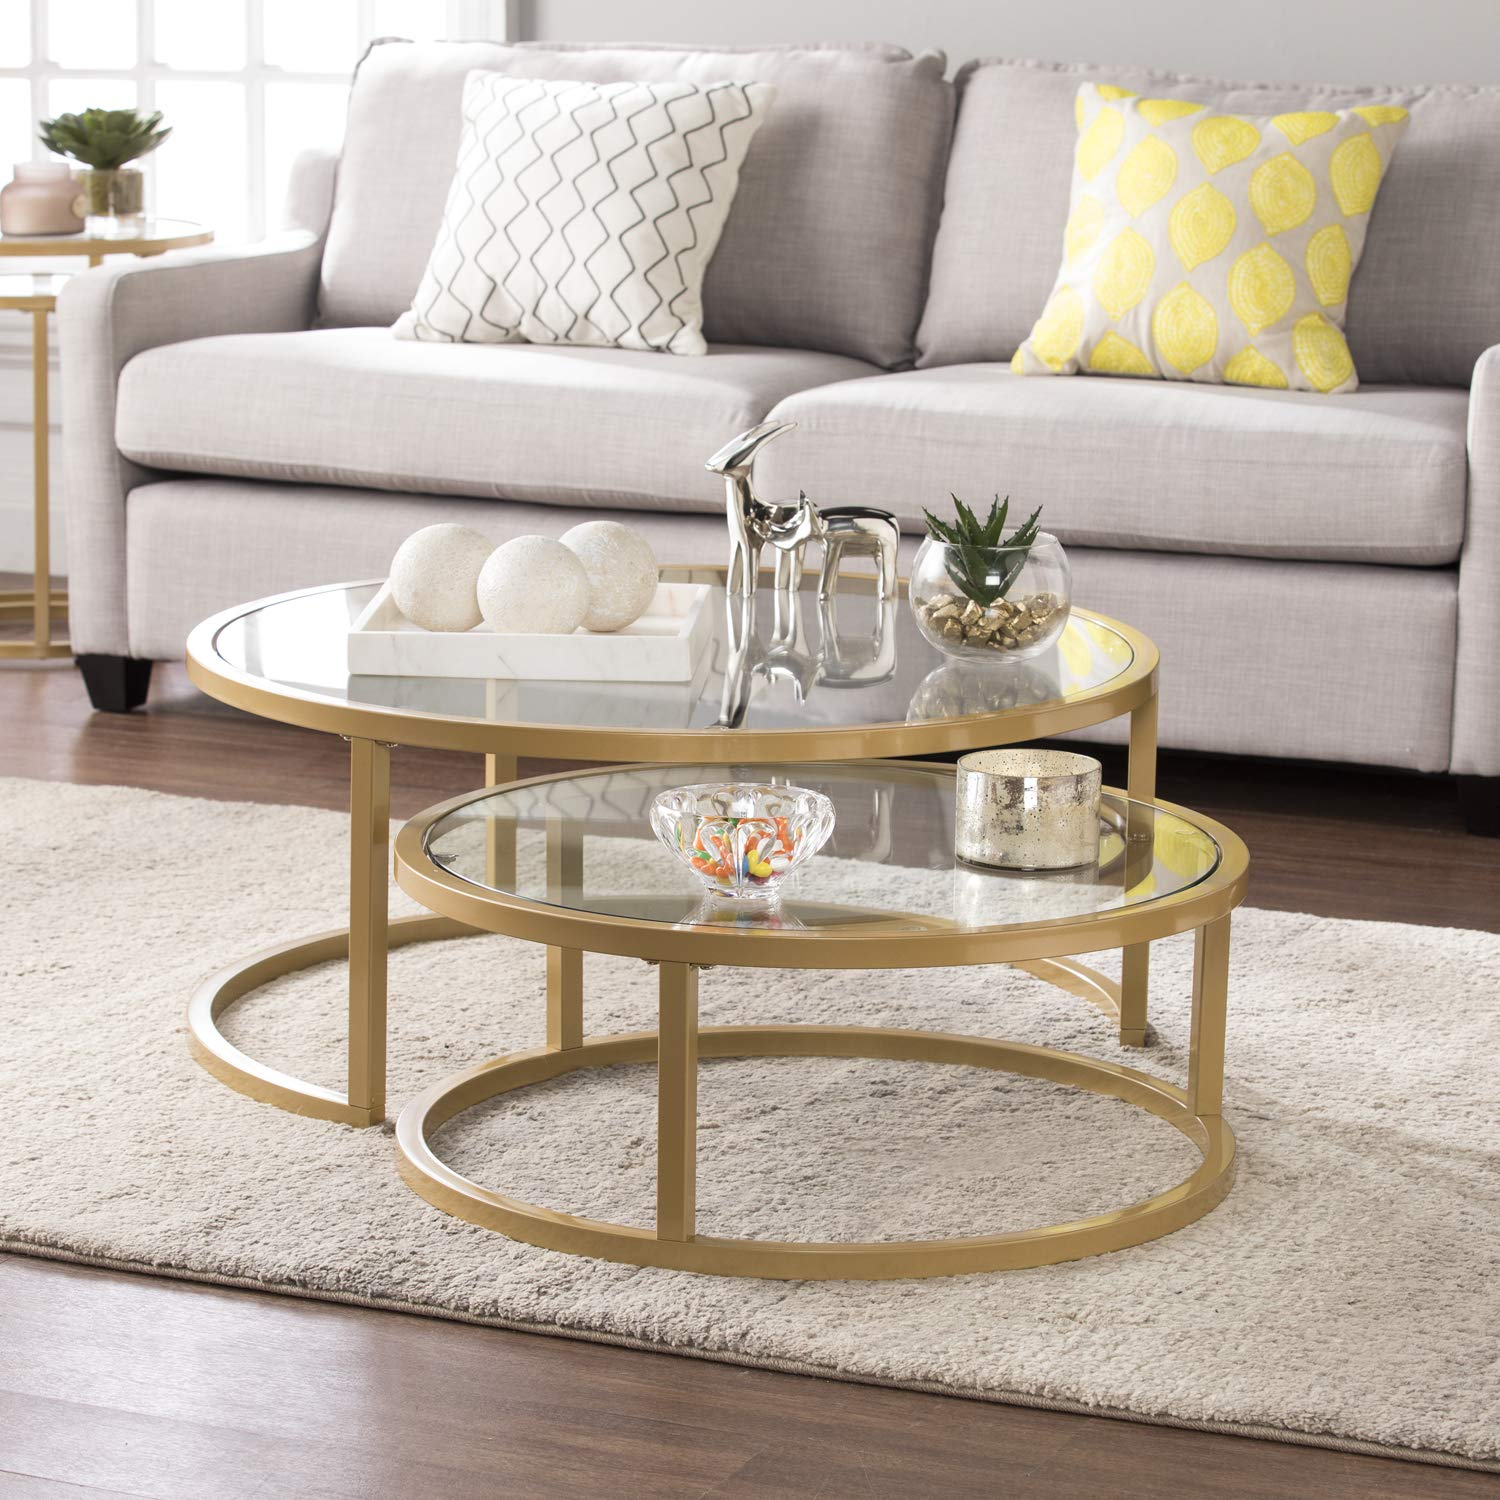 Southern Enterprises AMZ0924KC Evelyn Glam Nesting Cocktail Table, Gold by Southern Enterprises